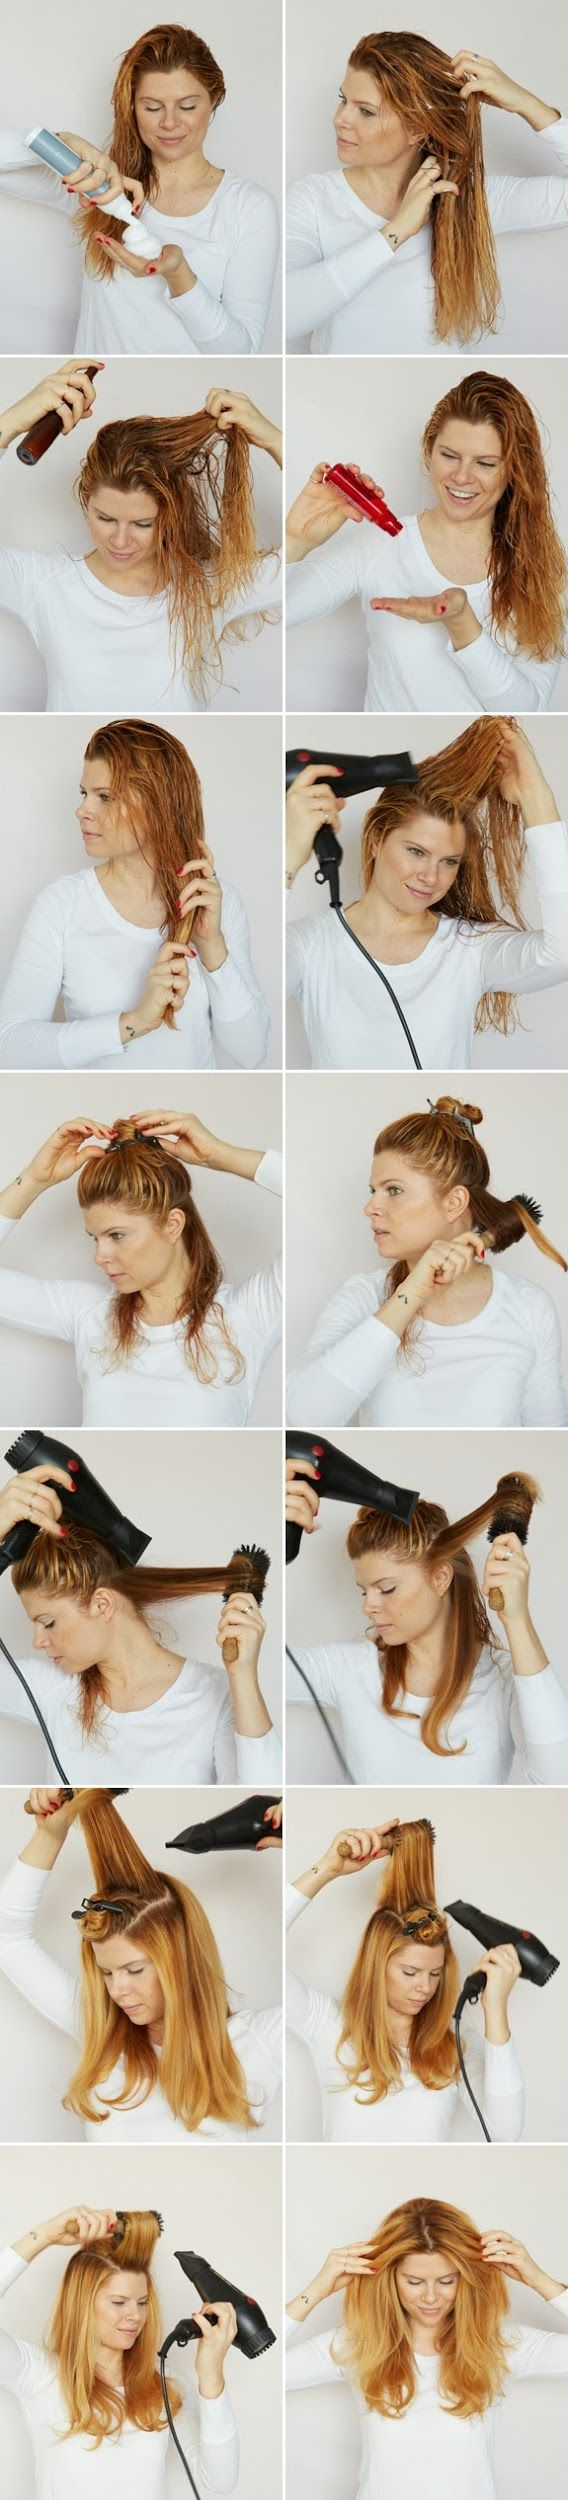 How to blow dry your hair like a hair stylist